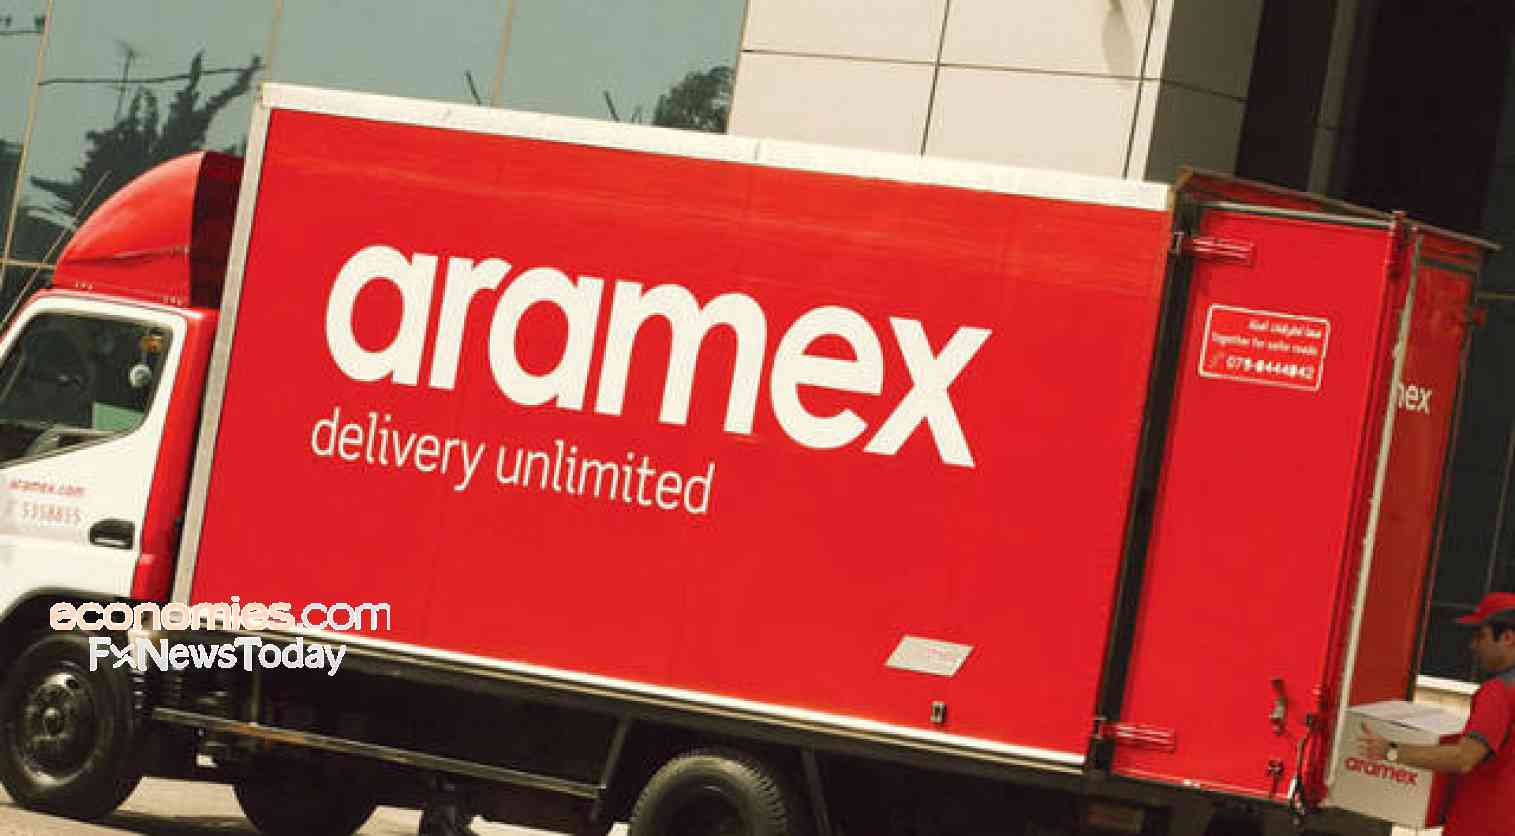 Australia Post divest Aramex stake in AED 602.6 million deal